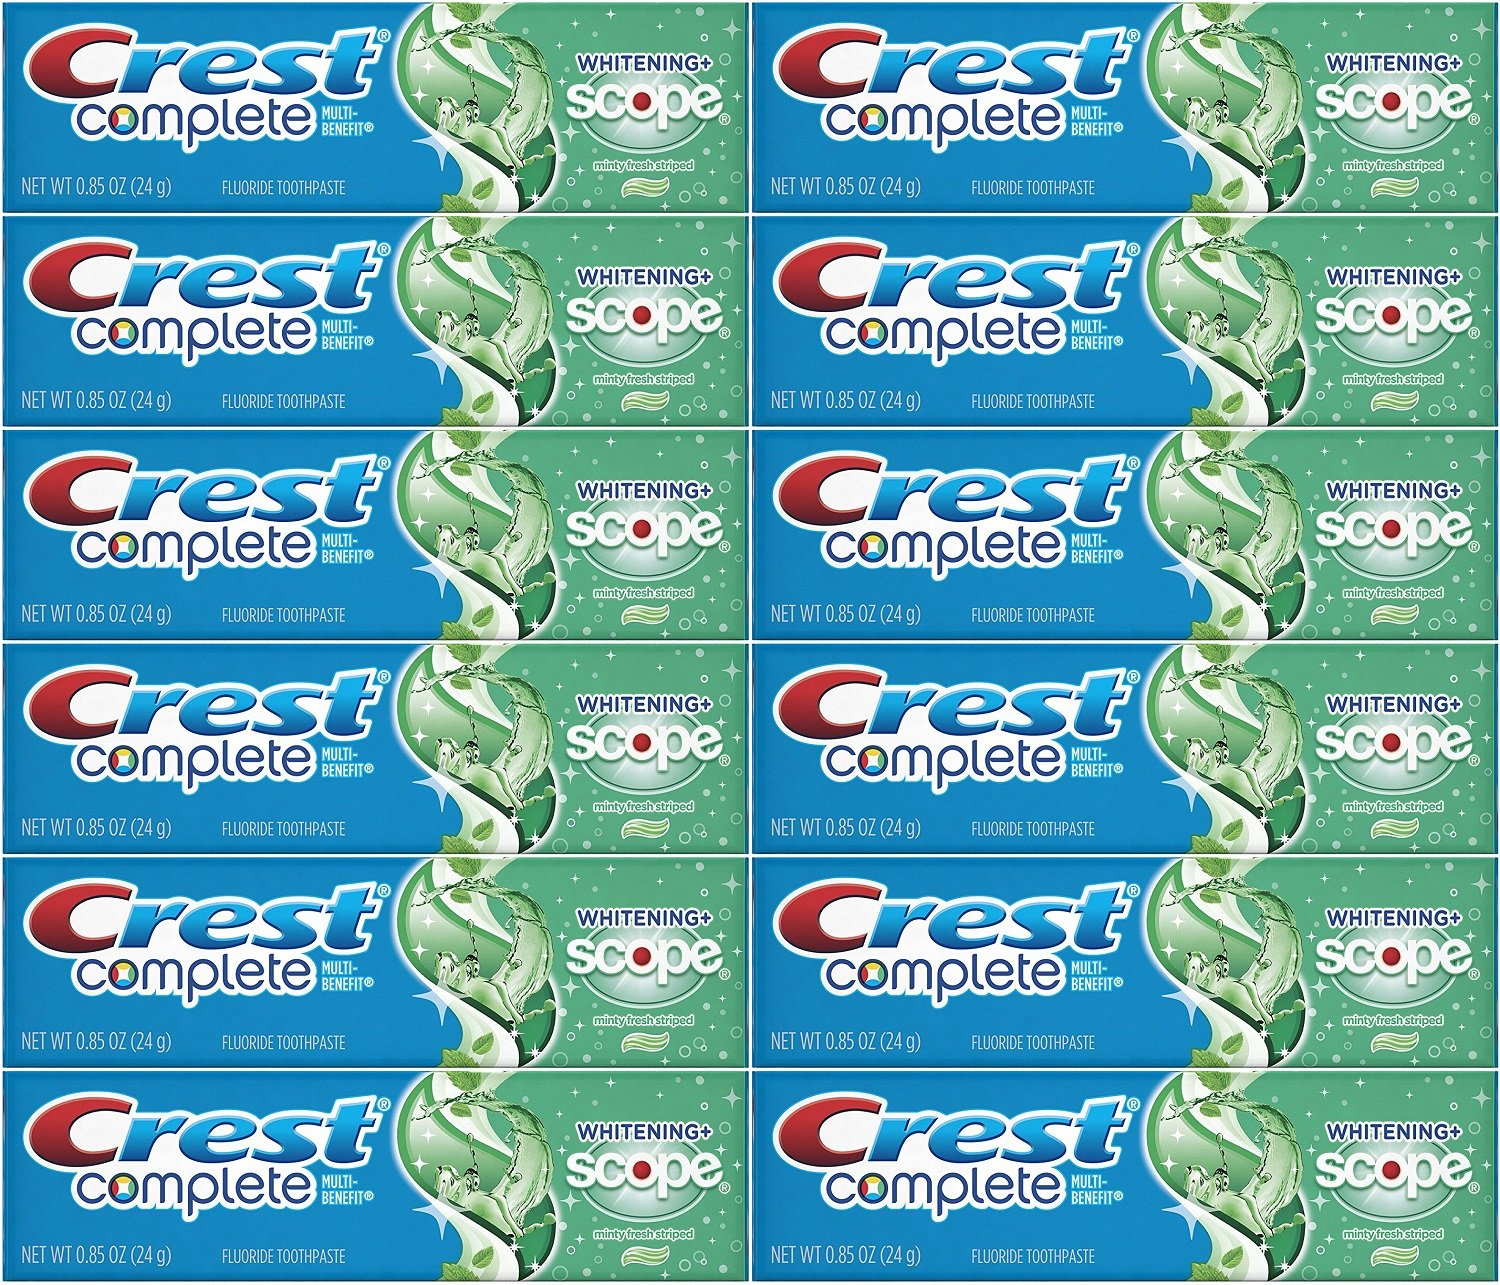 Crest Complete Whitening Plus Scope Minty Fresh Toothpaste, Travel Size, TSA Approved, 0.85 Ounce (Pack of 12) by Crest (Image #1)